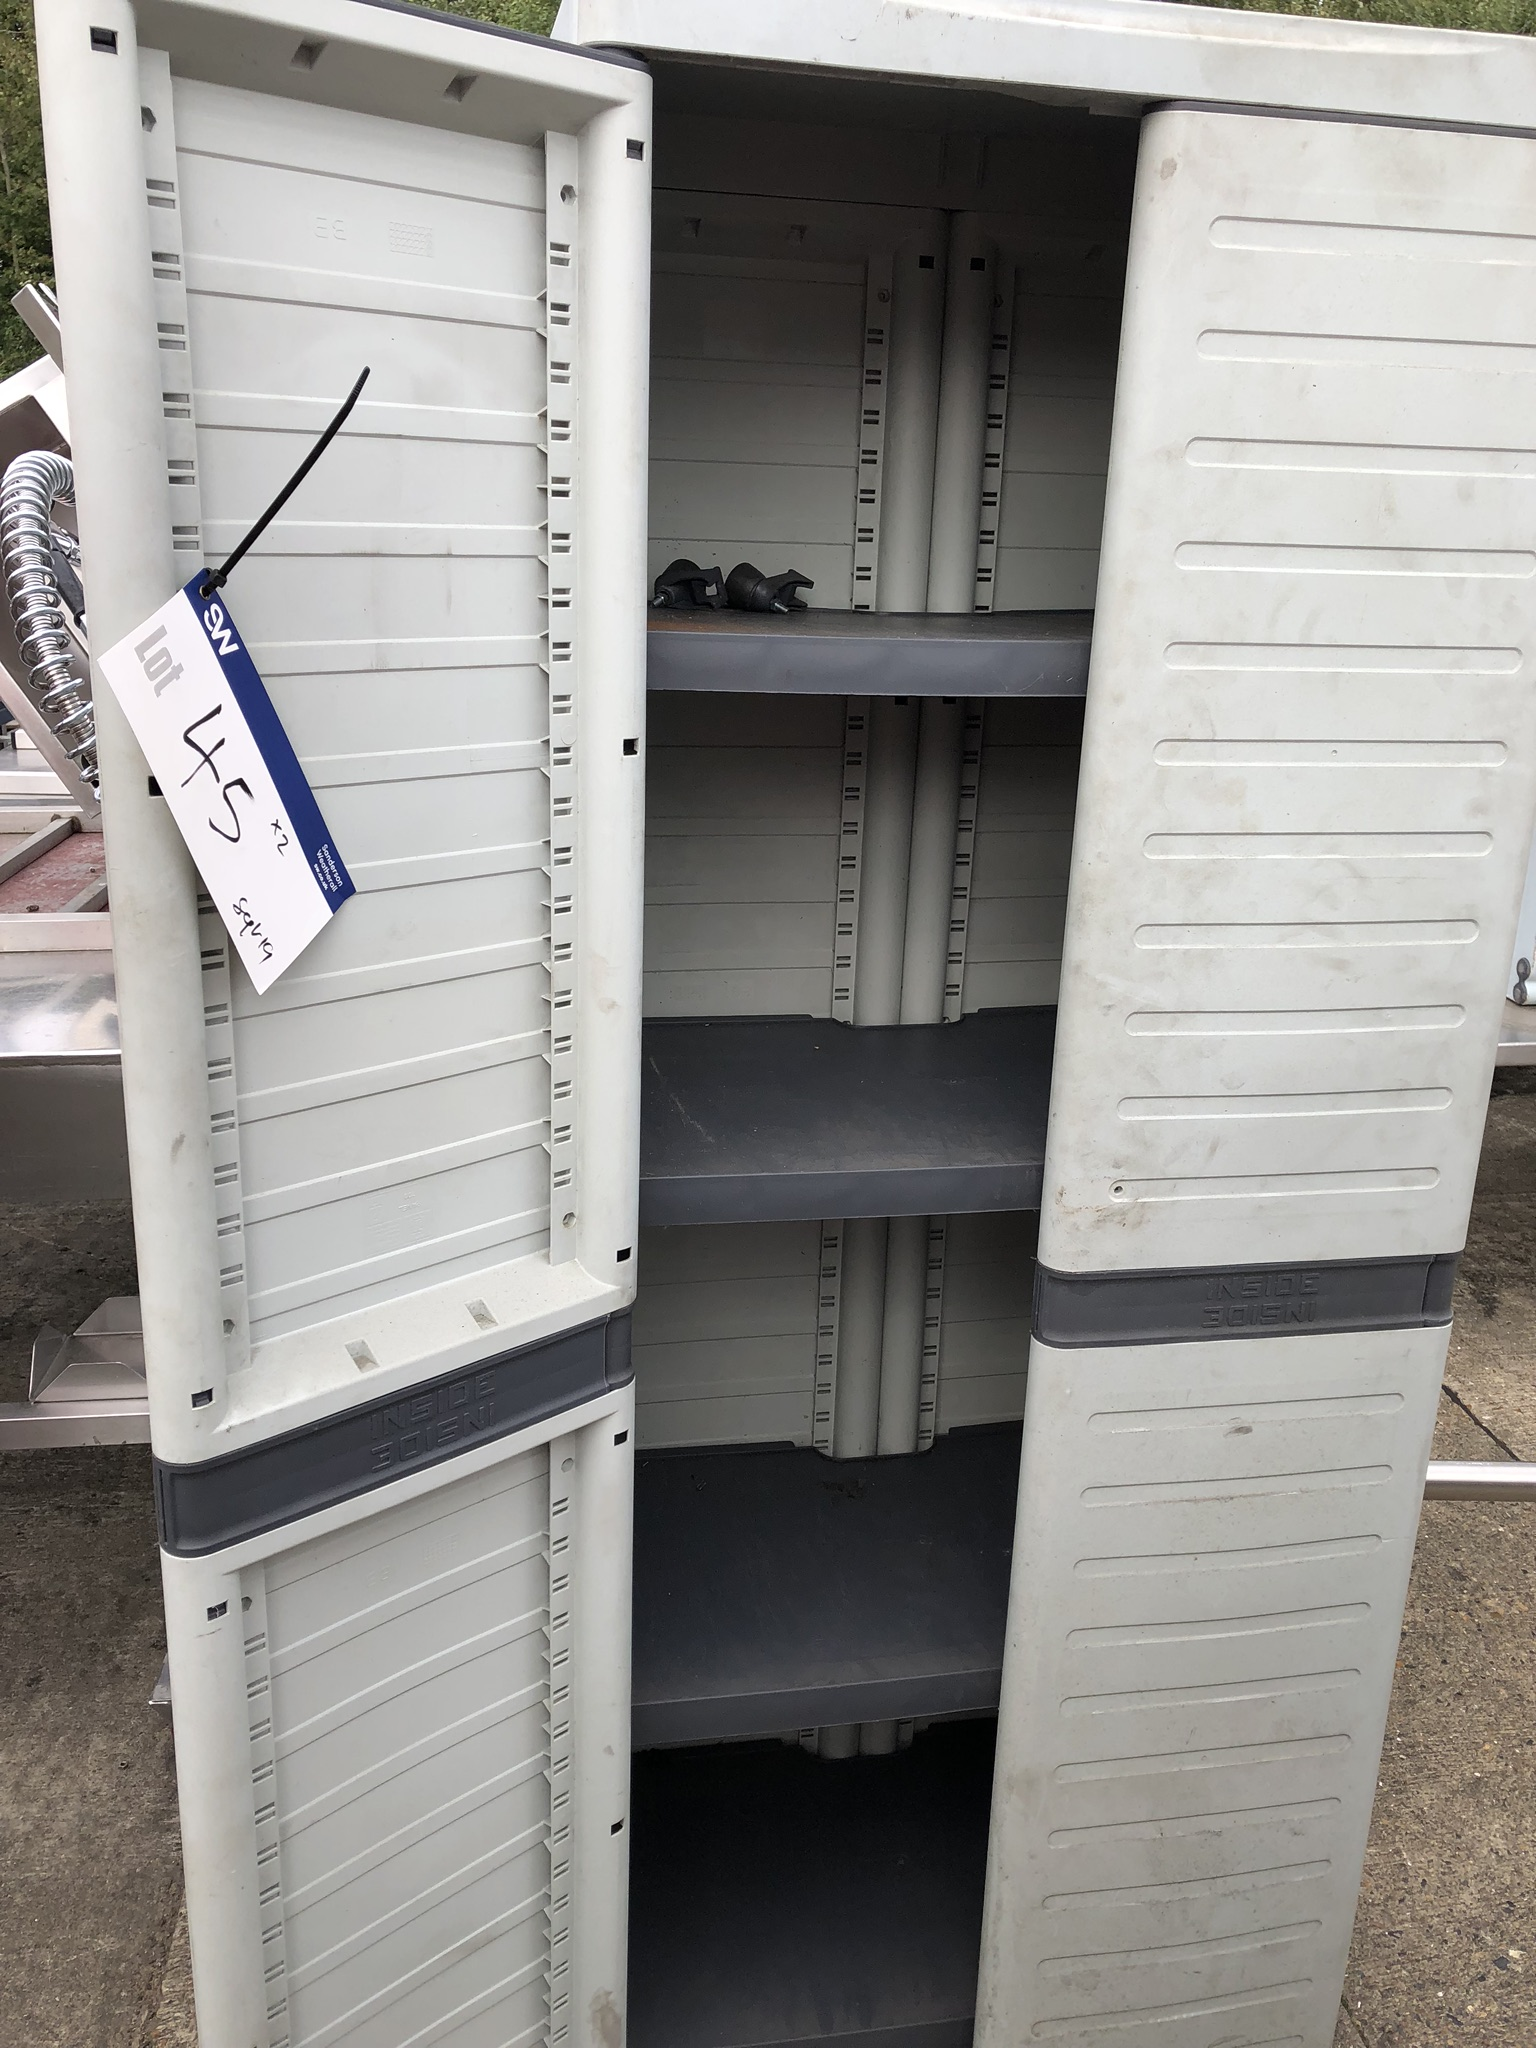 Two Plastic Cupboards, approx. 0.7m x 0.5m x 1.8m high, lift out charge - £20 - Image 3 of 3